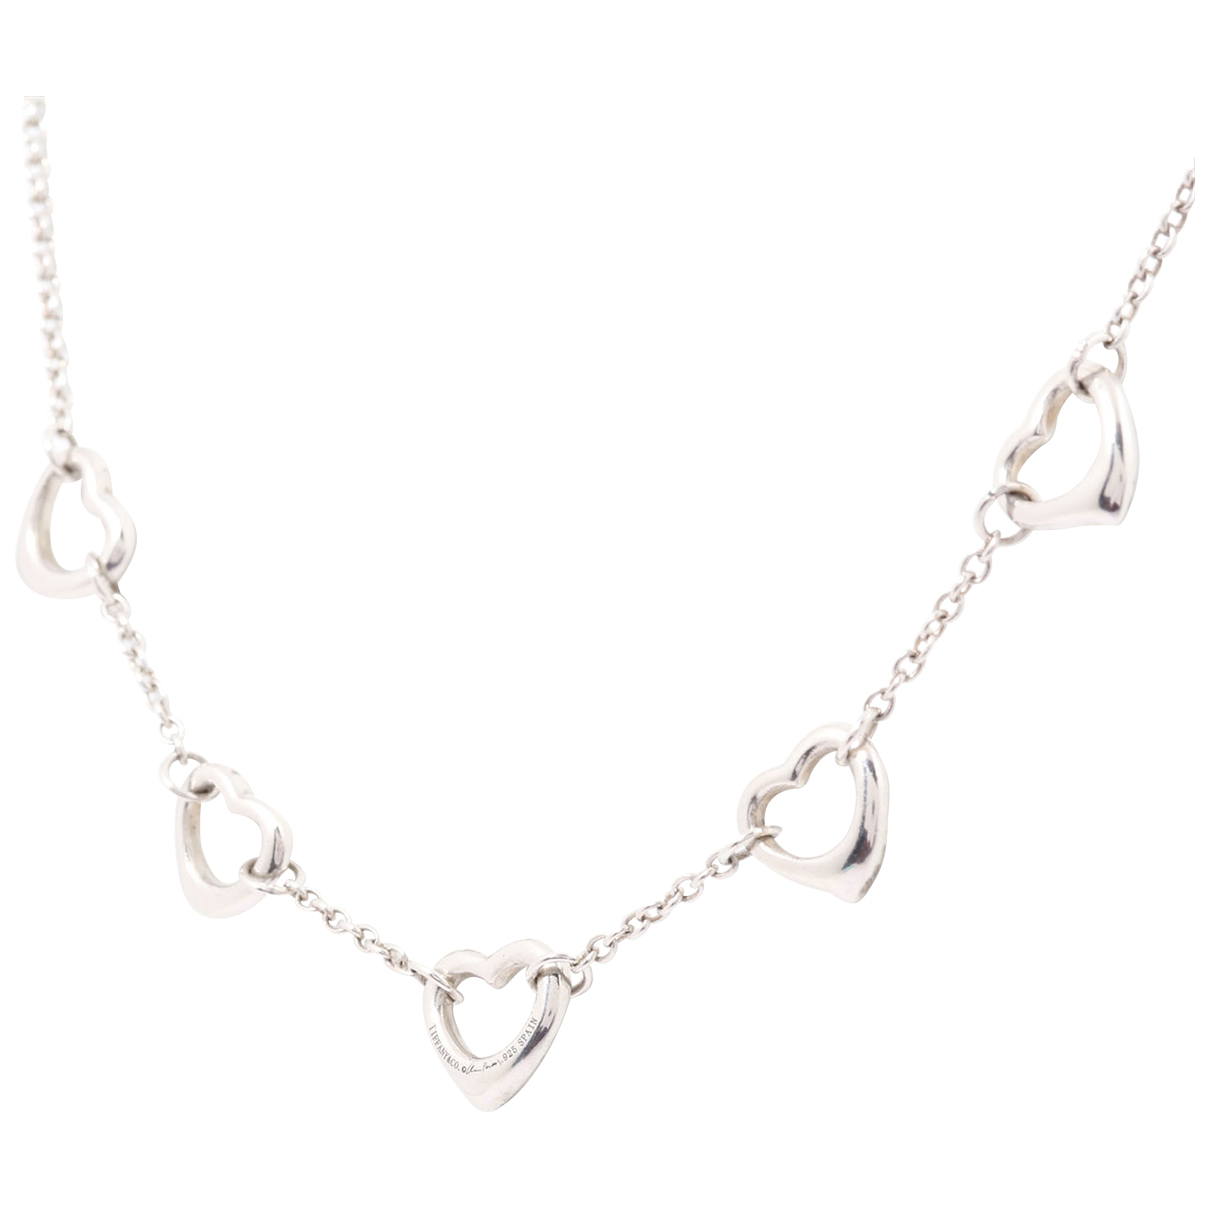 Collar Elsa Peretti  de Plata Tiffany & Co